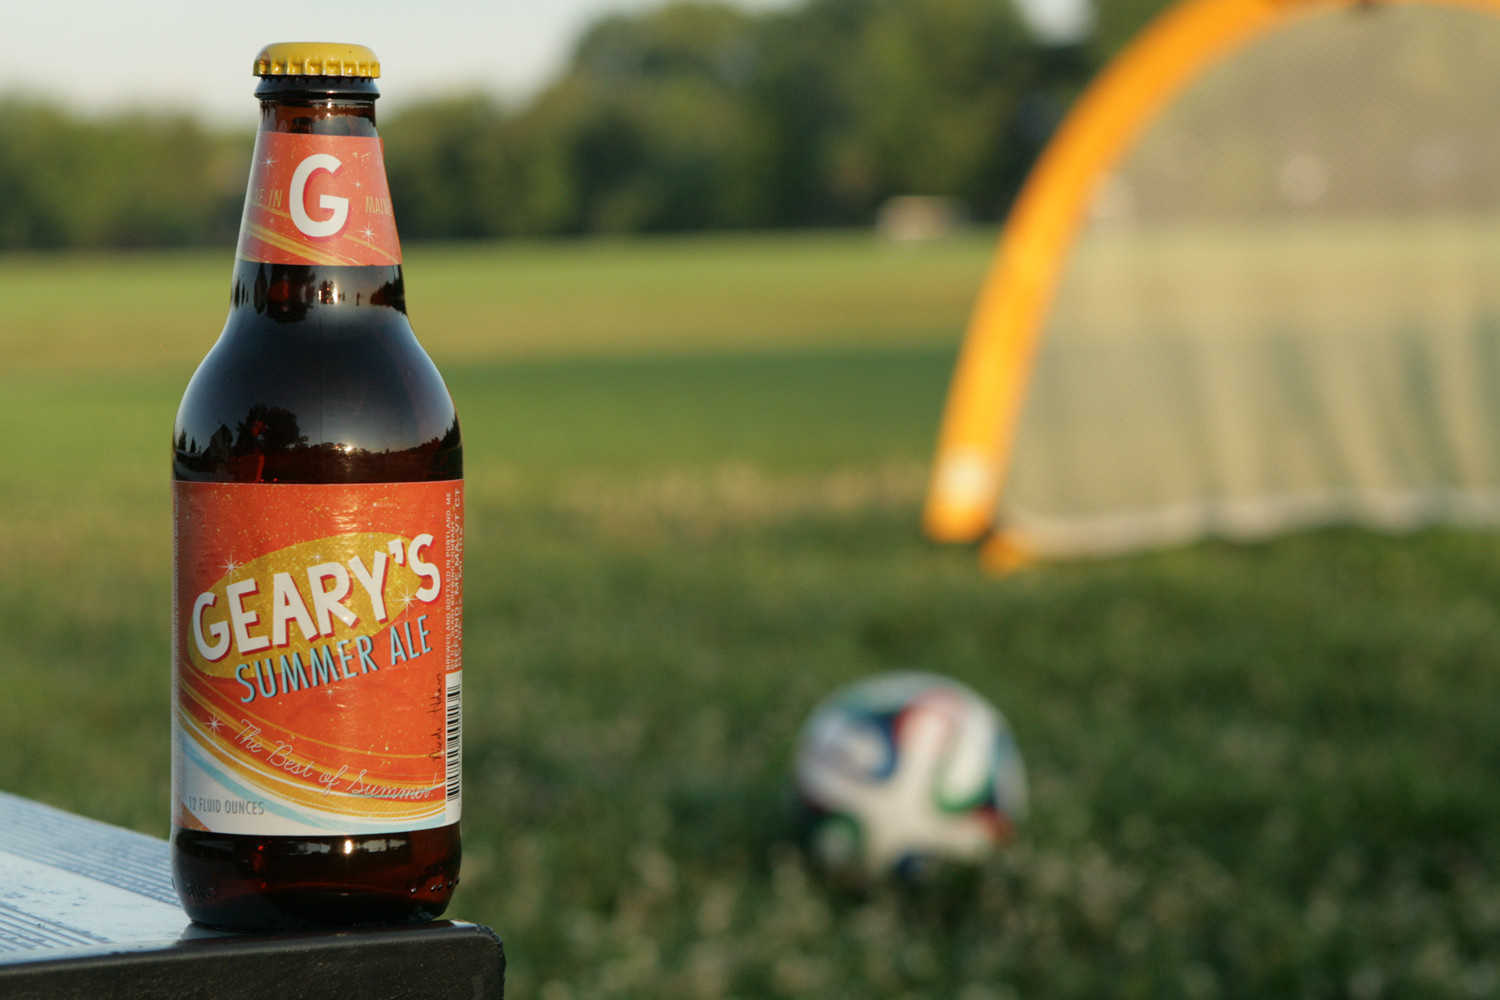 Experience the season with Geary's Summer Ale.